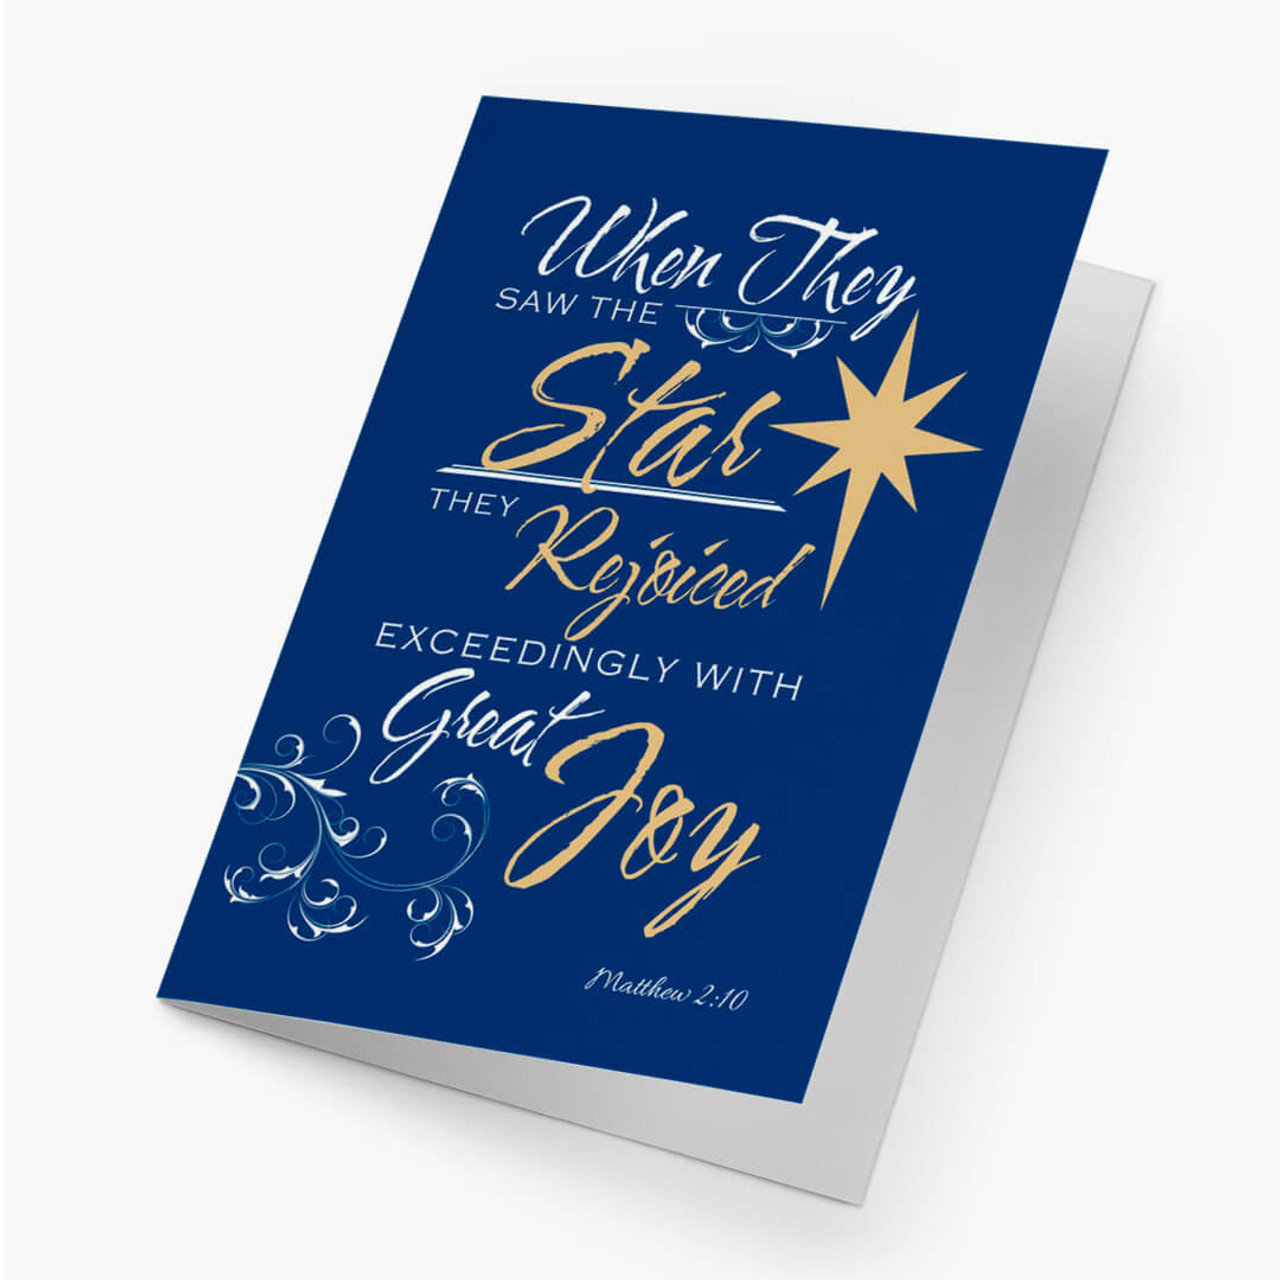 Rejoiced With Joy Christmas Card